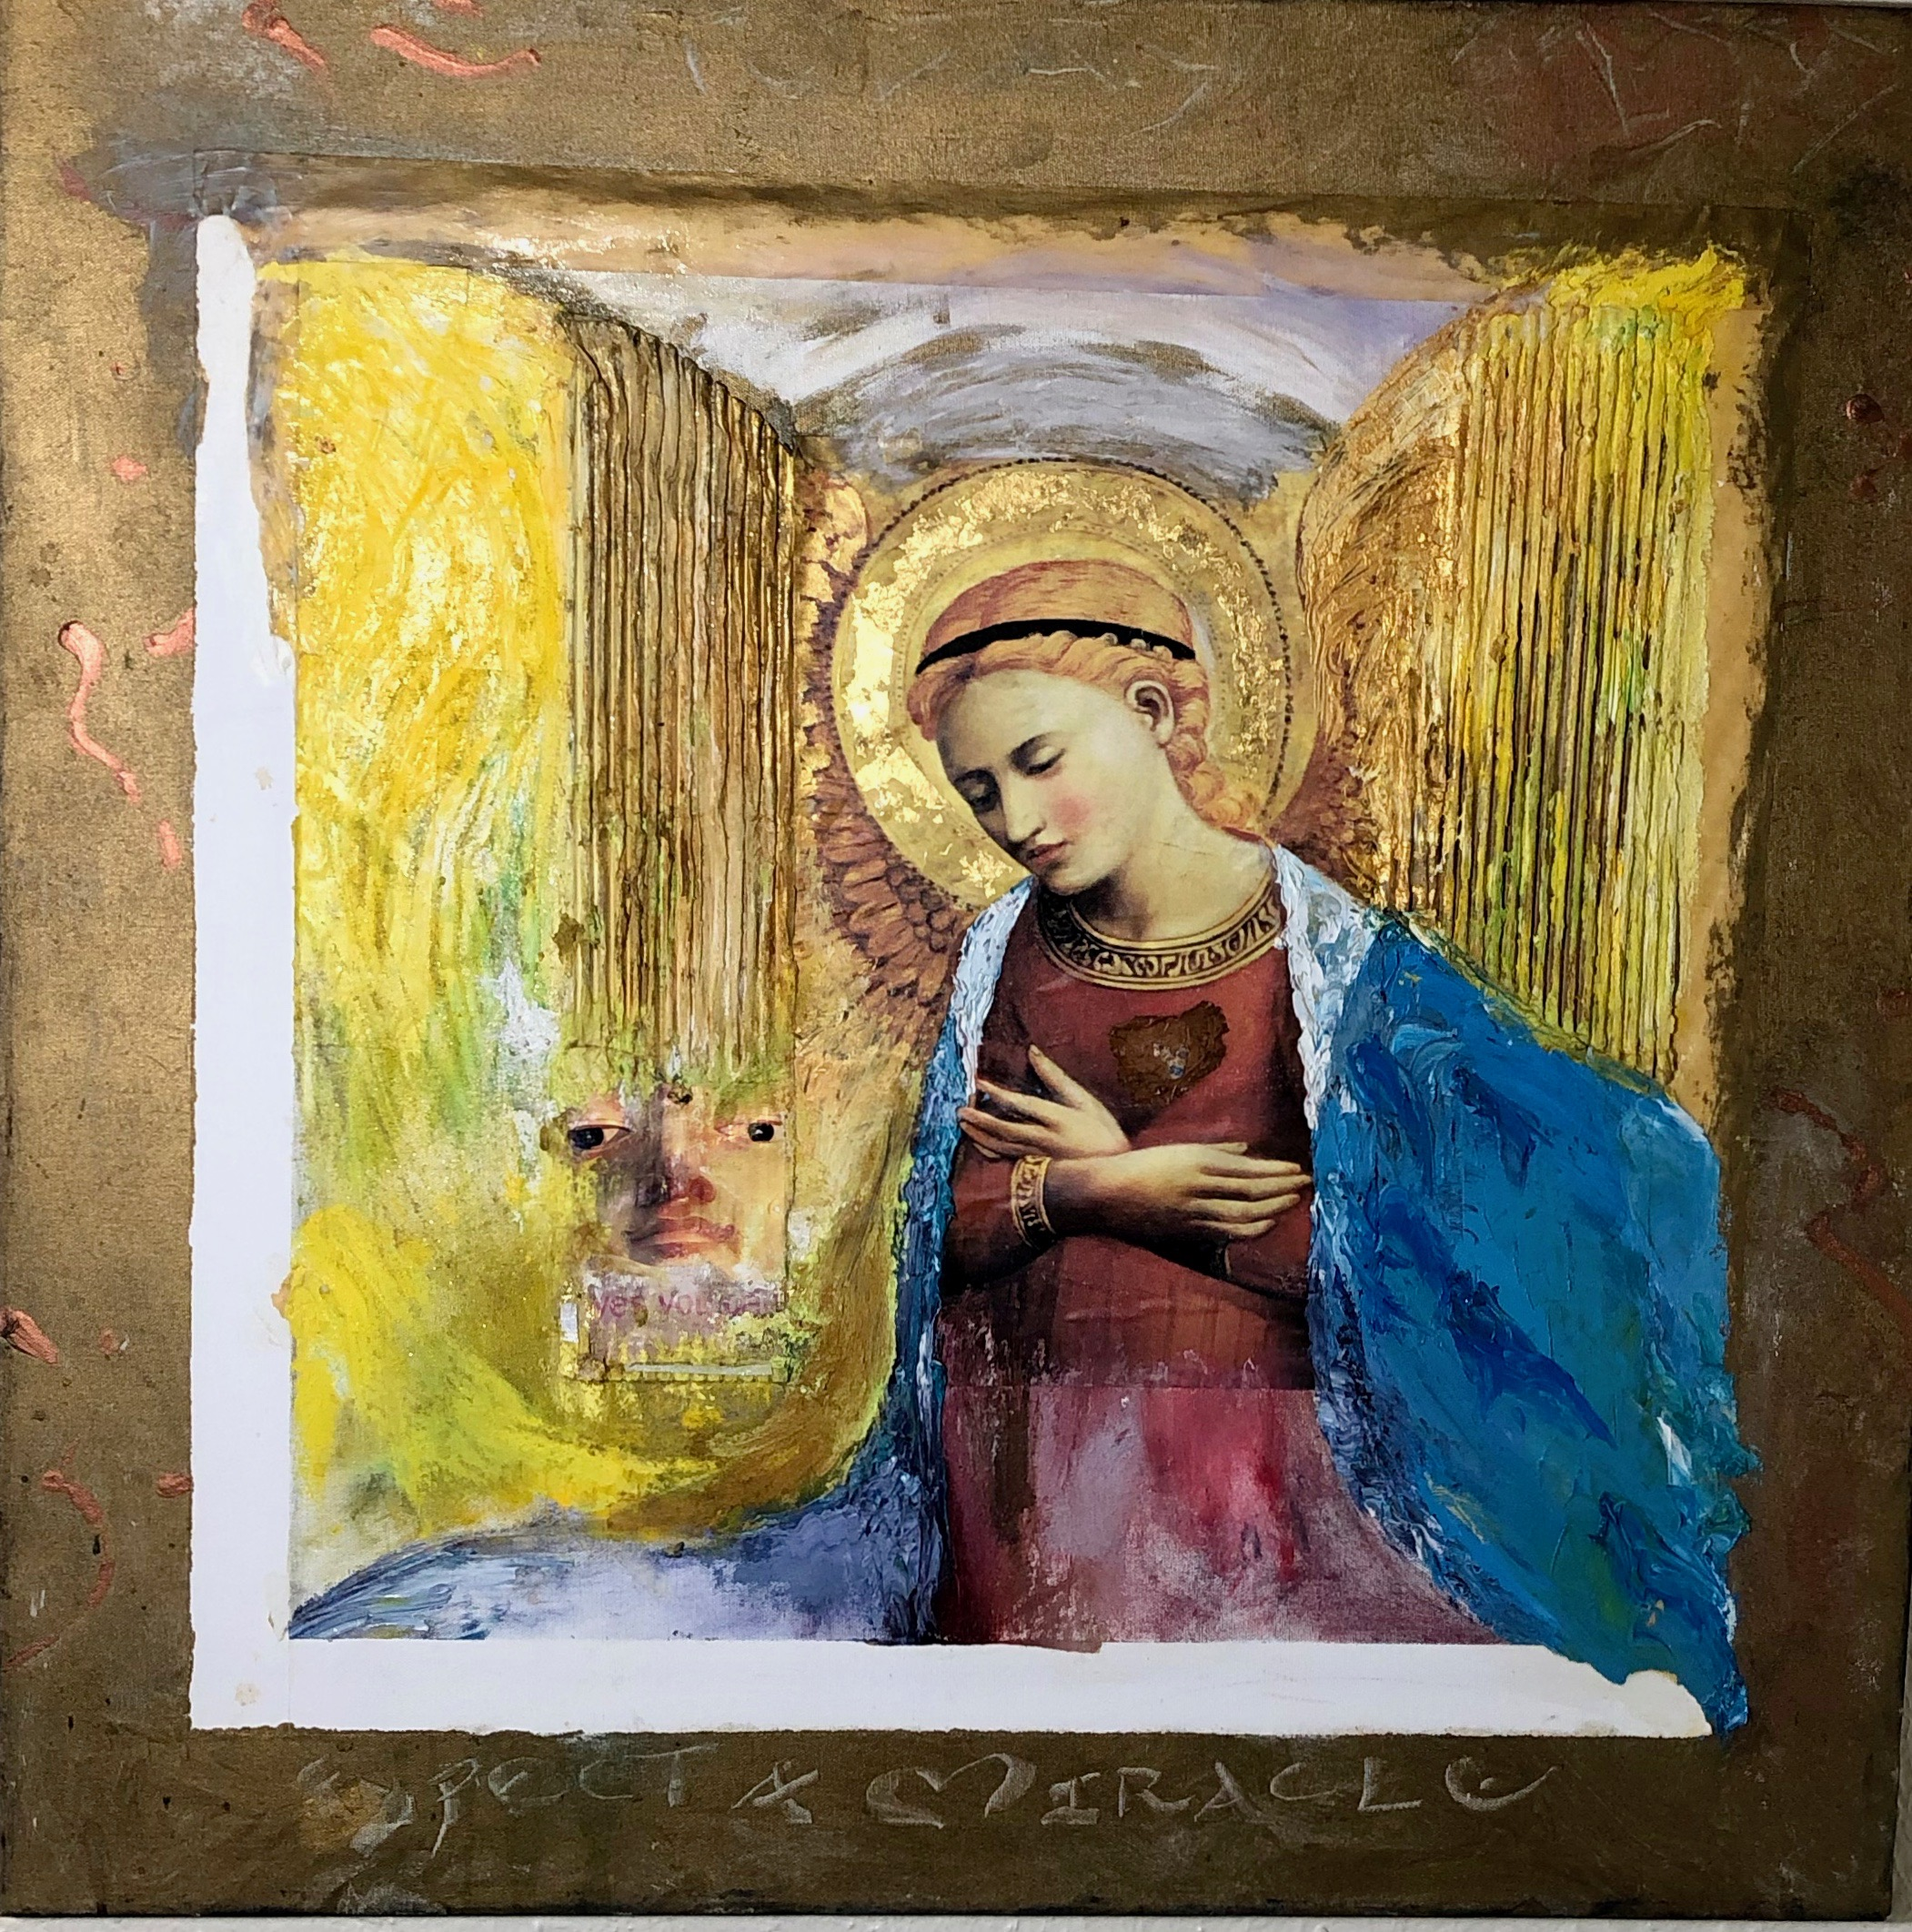 EXPECT A MIRACLE, ASSEMBLAGE PAINTING WITH GOLD LEAF, 30 X 30 INCHES